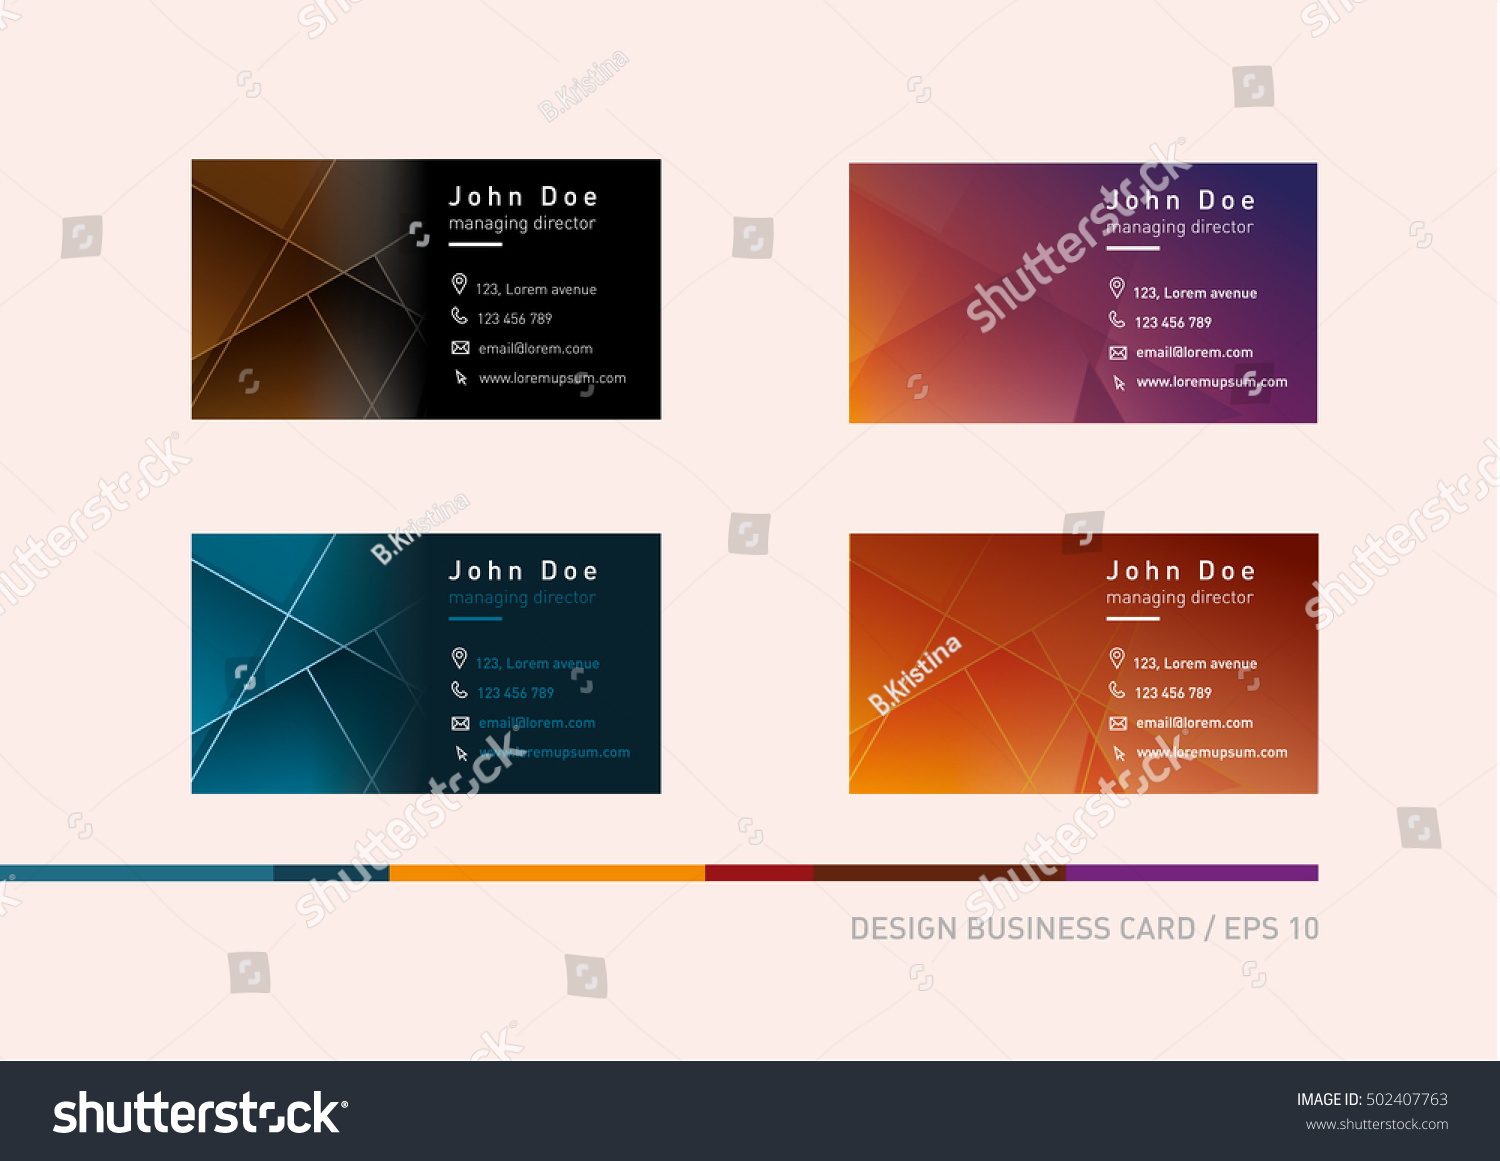 Business Cards With Different Photos Images - Card Design And Card ...